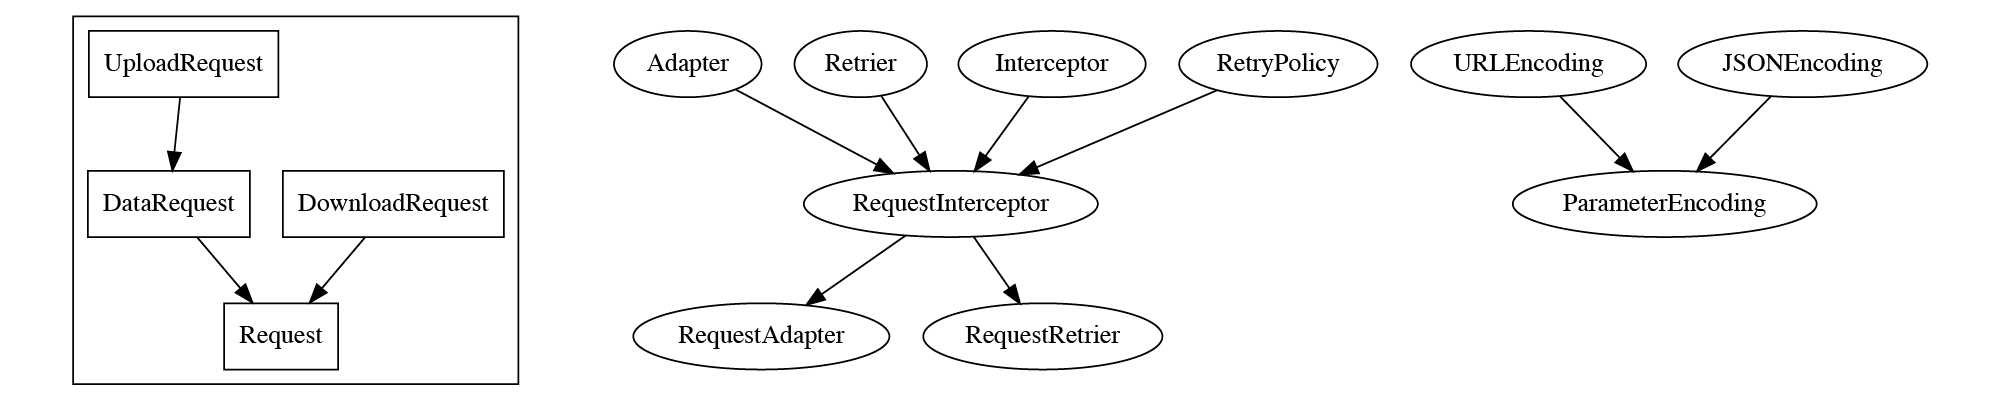 Excerpt of swift-doc-api Diagram for Alamofire